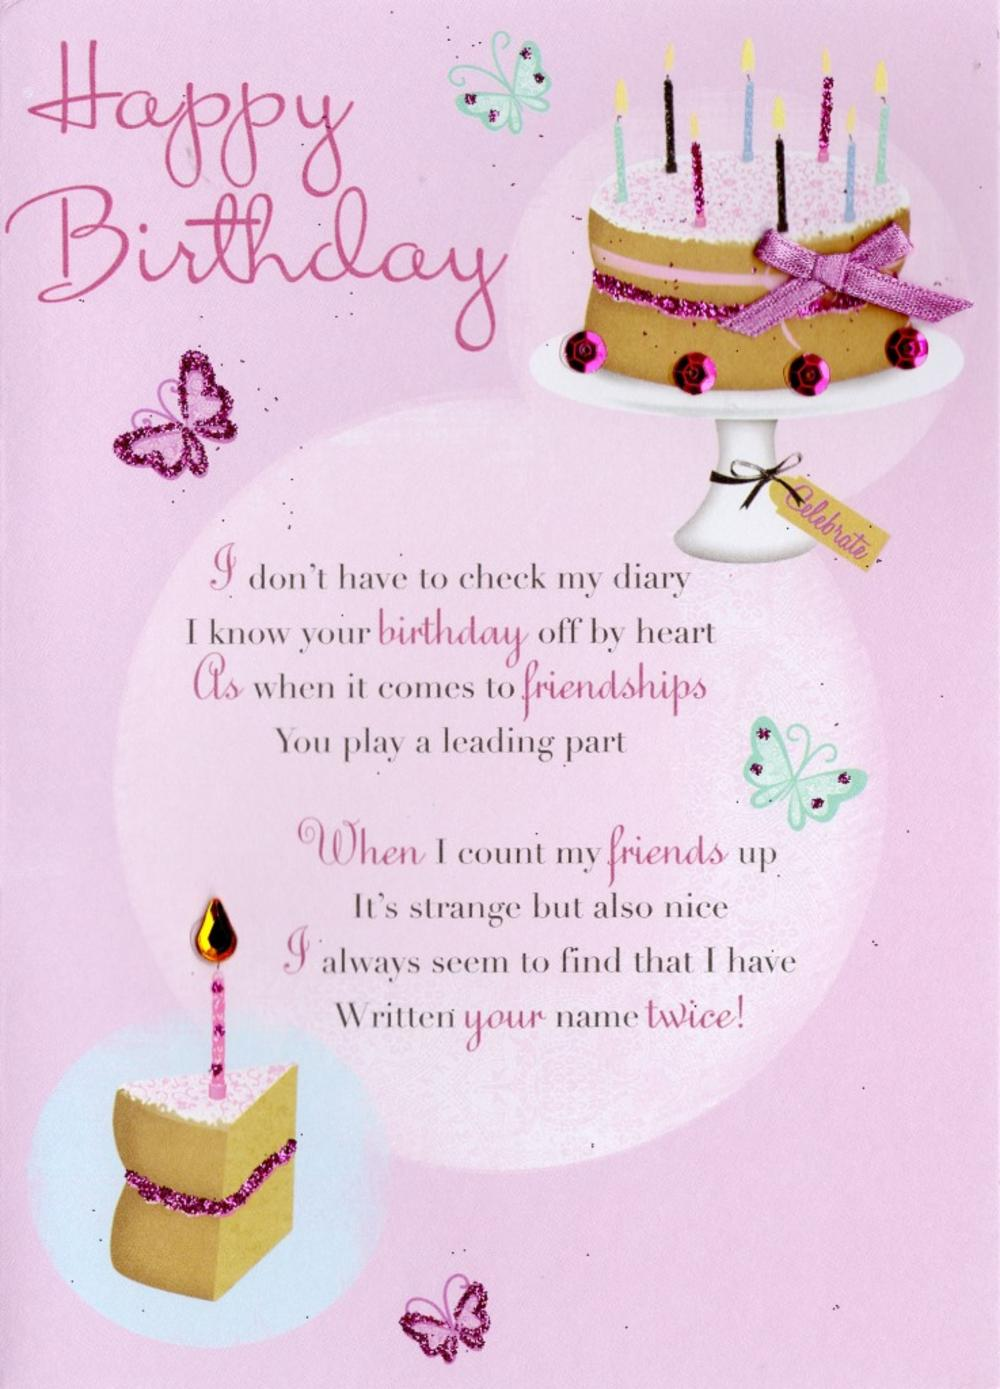 Friend happy birthday greeting card cards love kates friend happy birthday greeting card bookmarktalkfo Choice Image